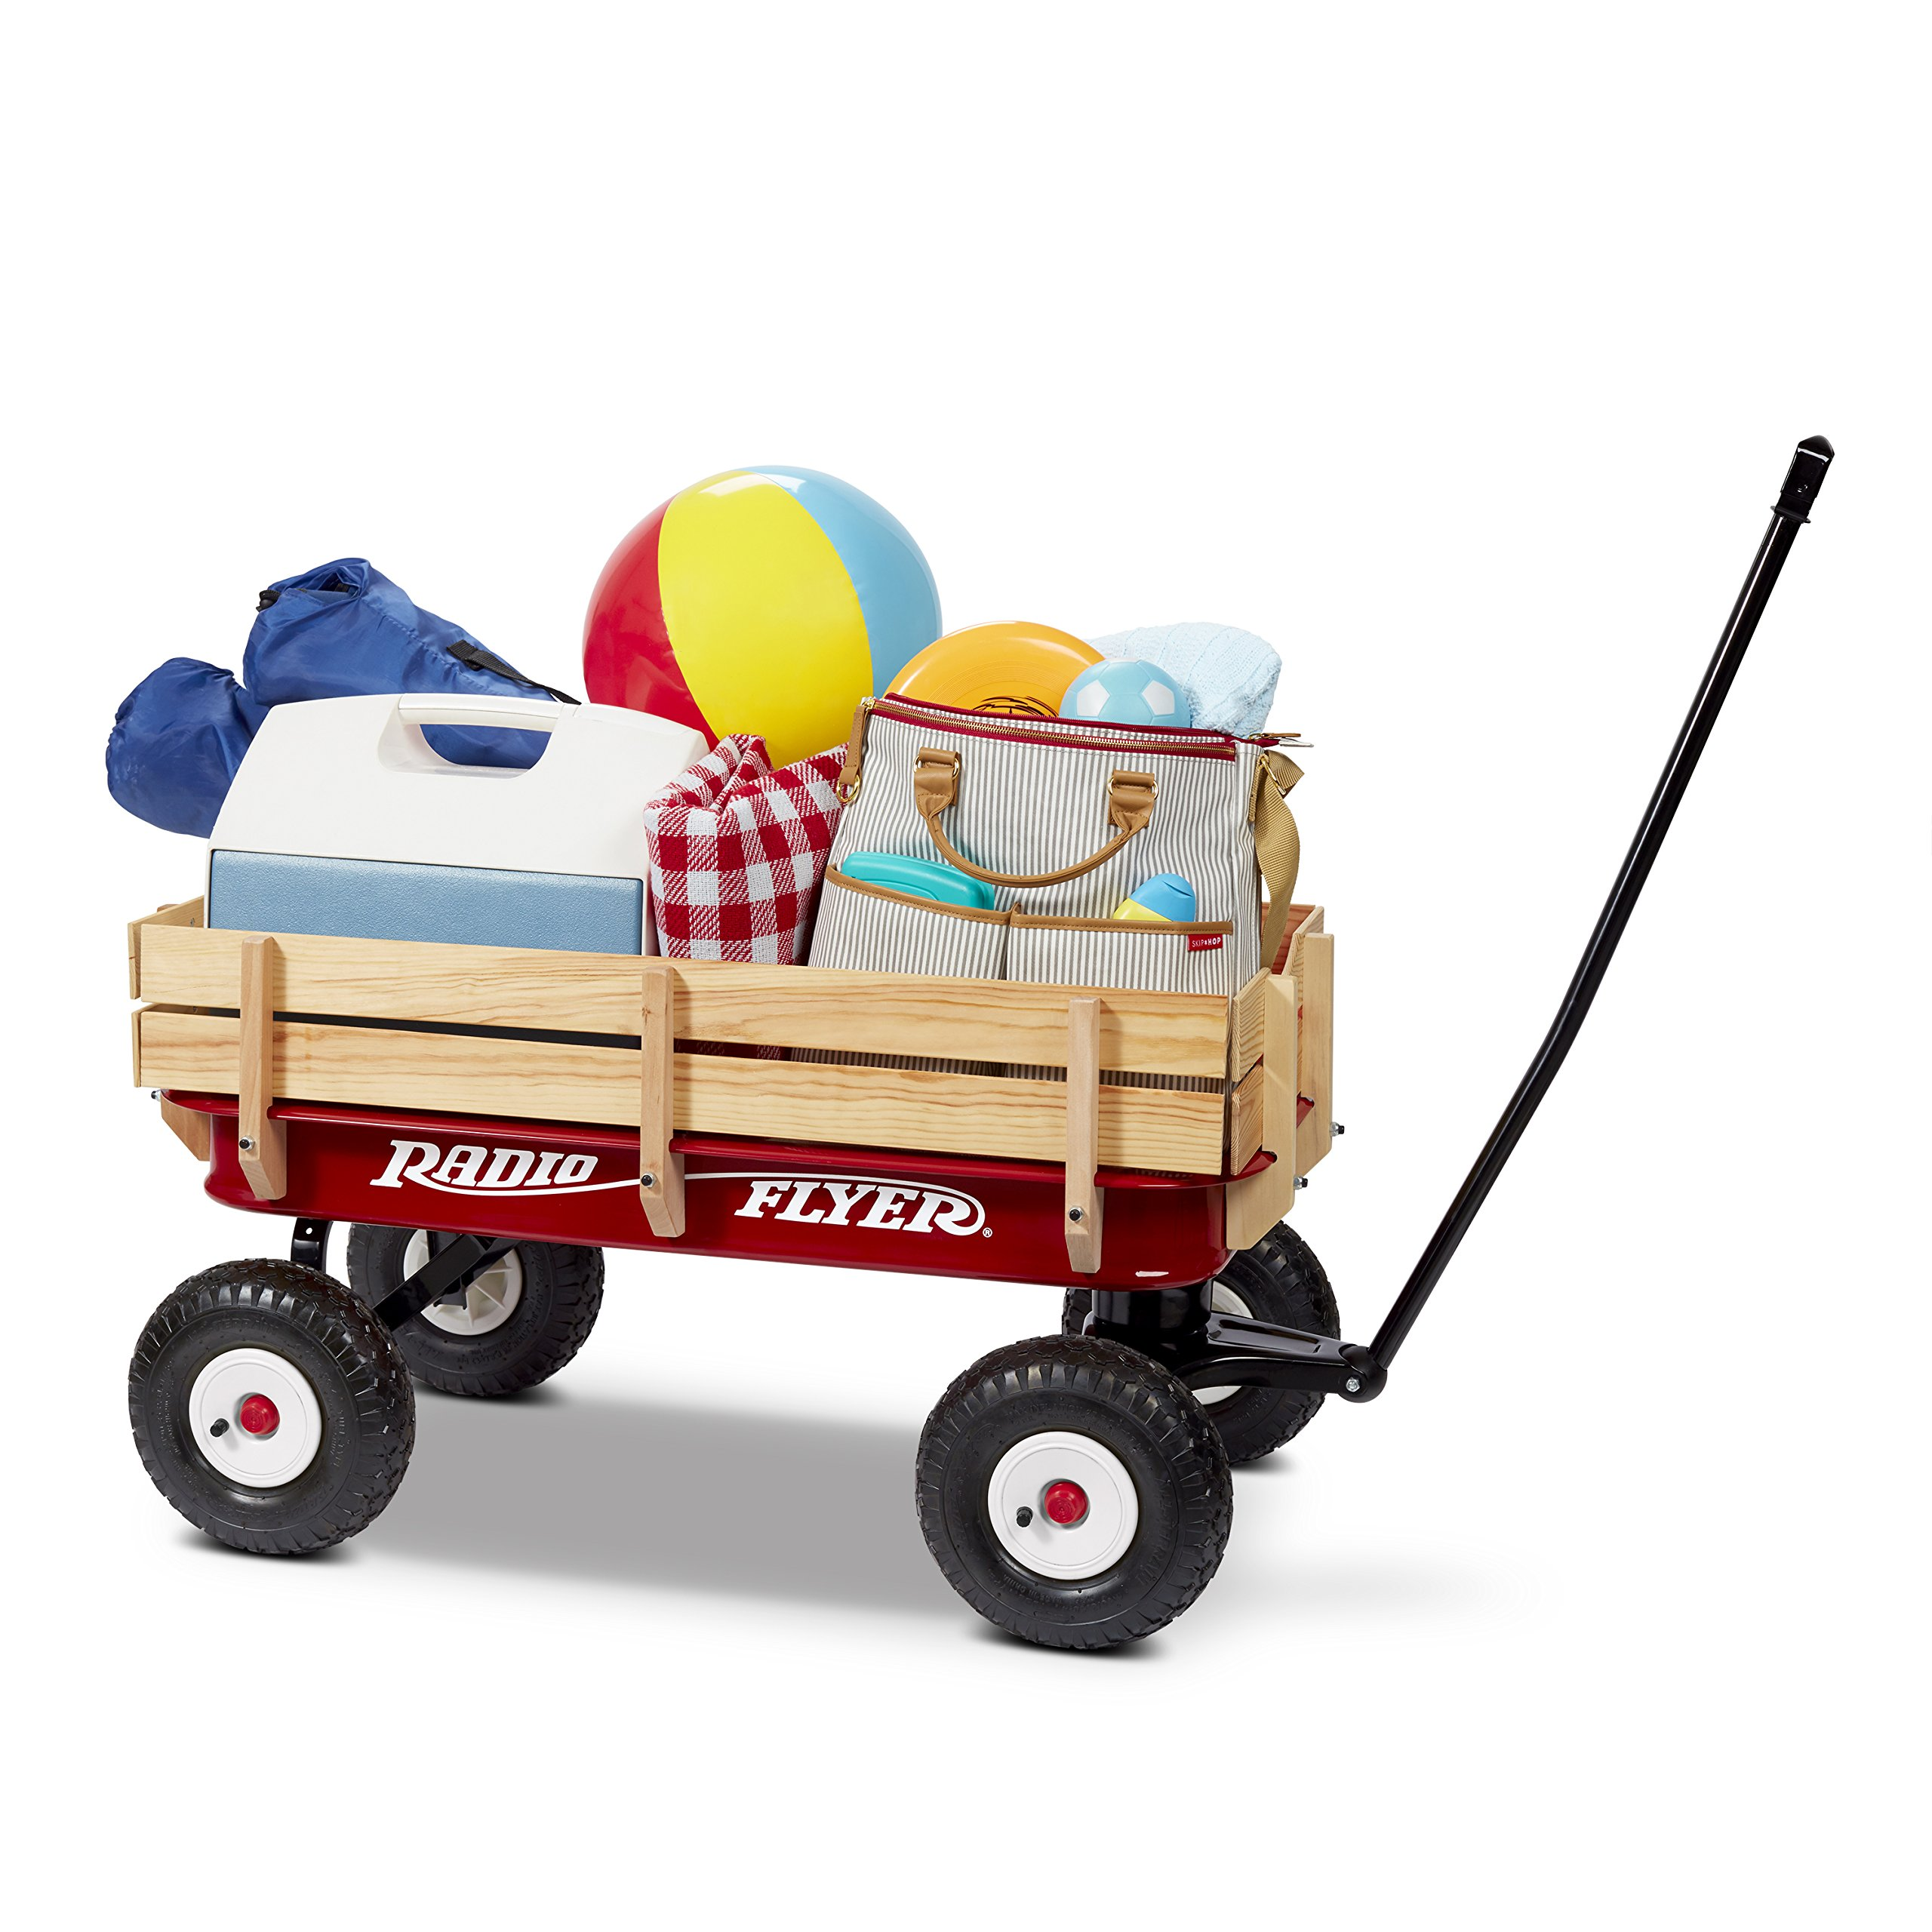 Radio Flyer Full Size All-Terrain Steel & Wood Wagon by Radio Flyer (Image #5)